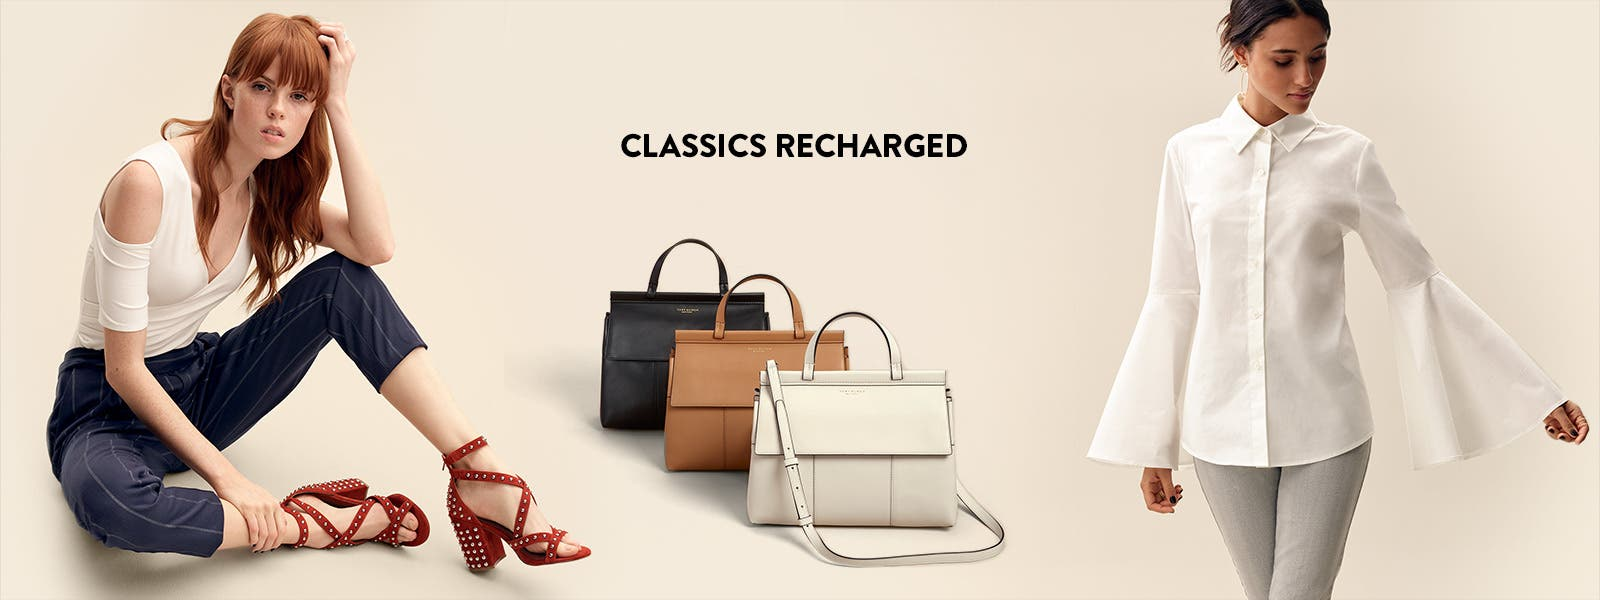 Work mode, classic icons: women's work-to-weekend clothing, shoes and accessories.